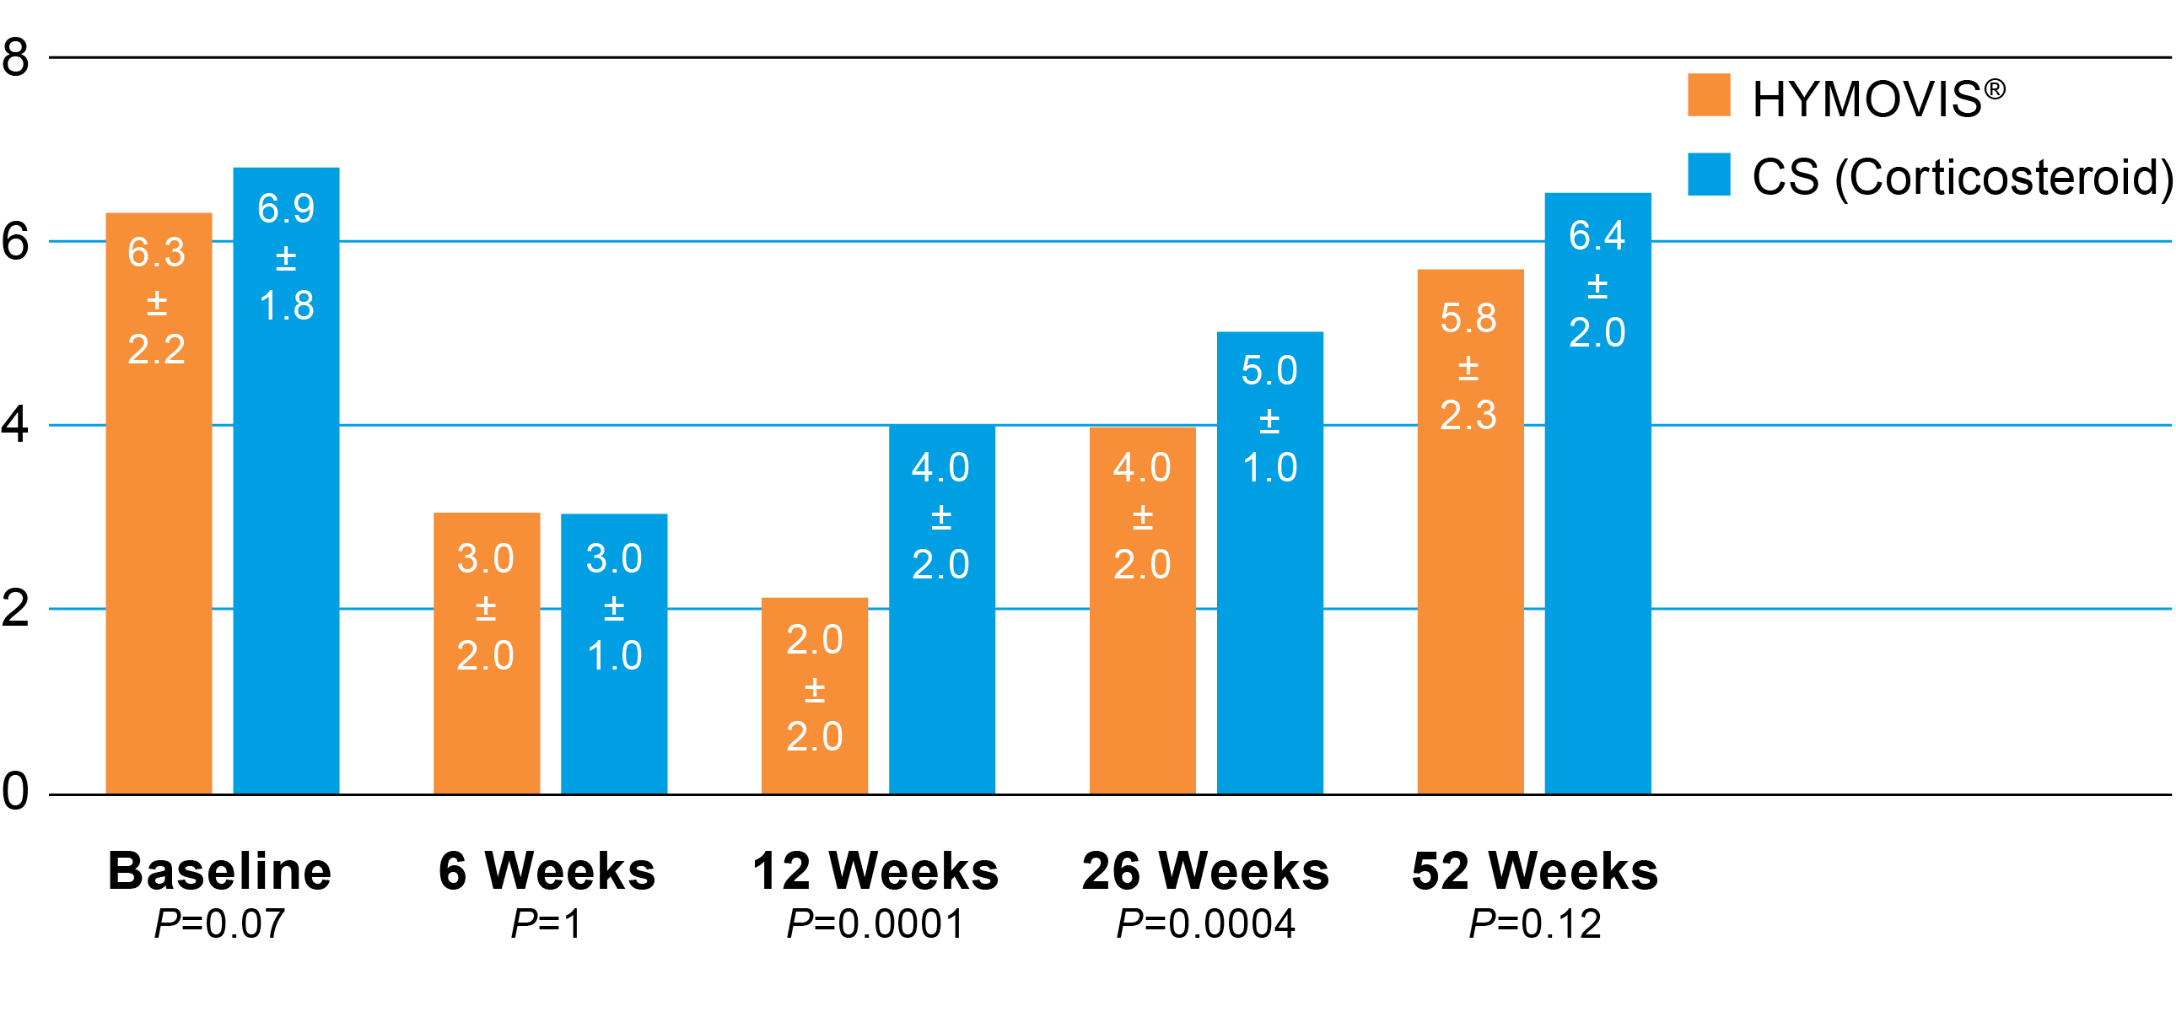 A bar graph showing the total VAA for pain scores for HYMOVIS